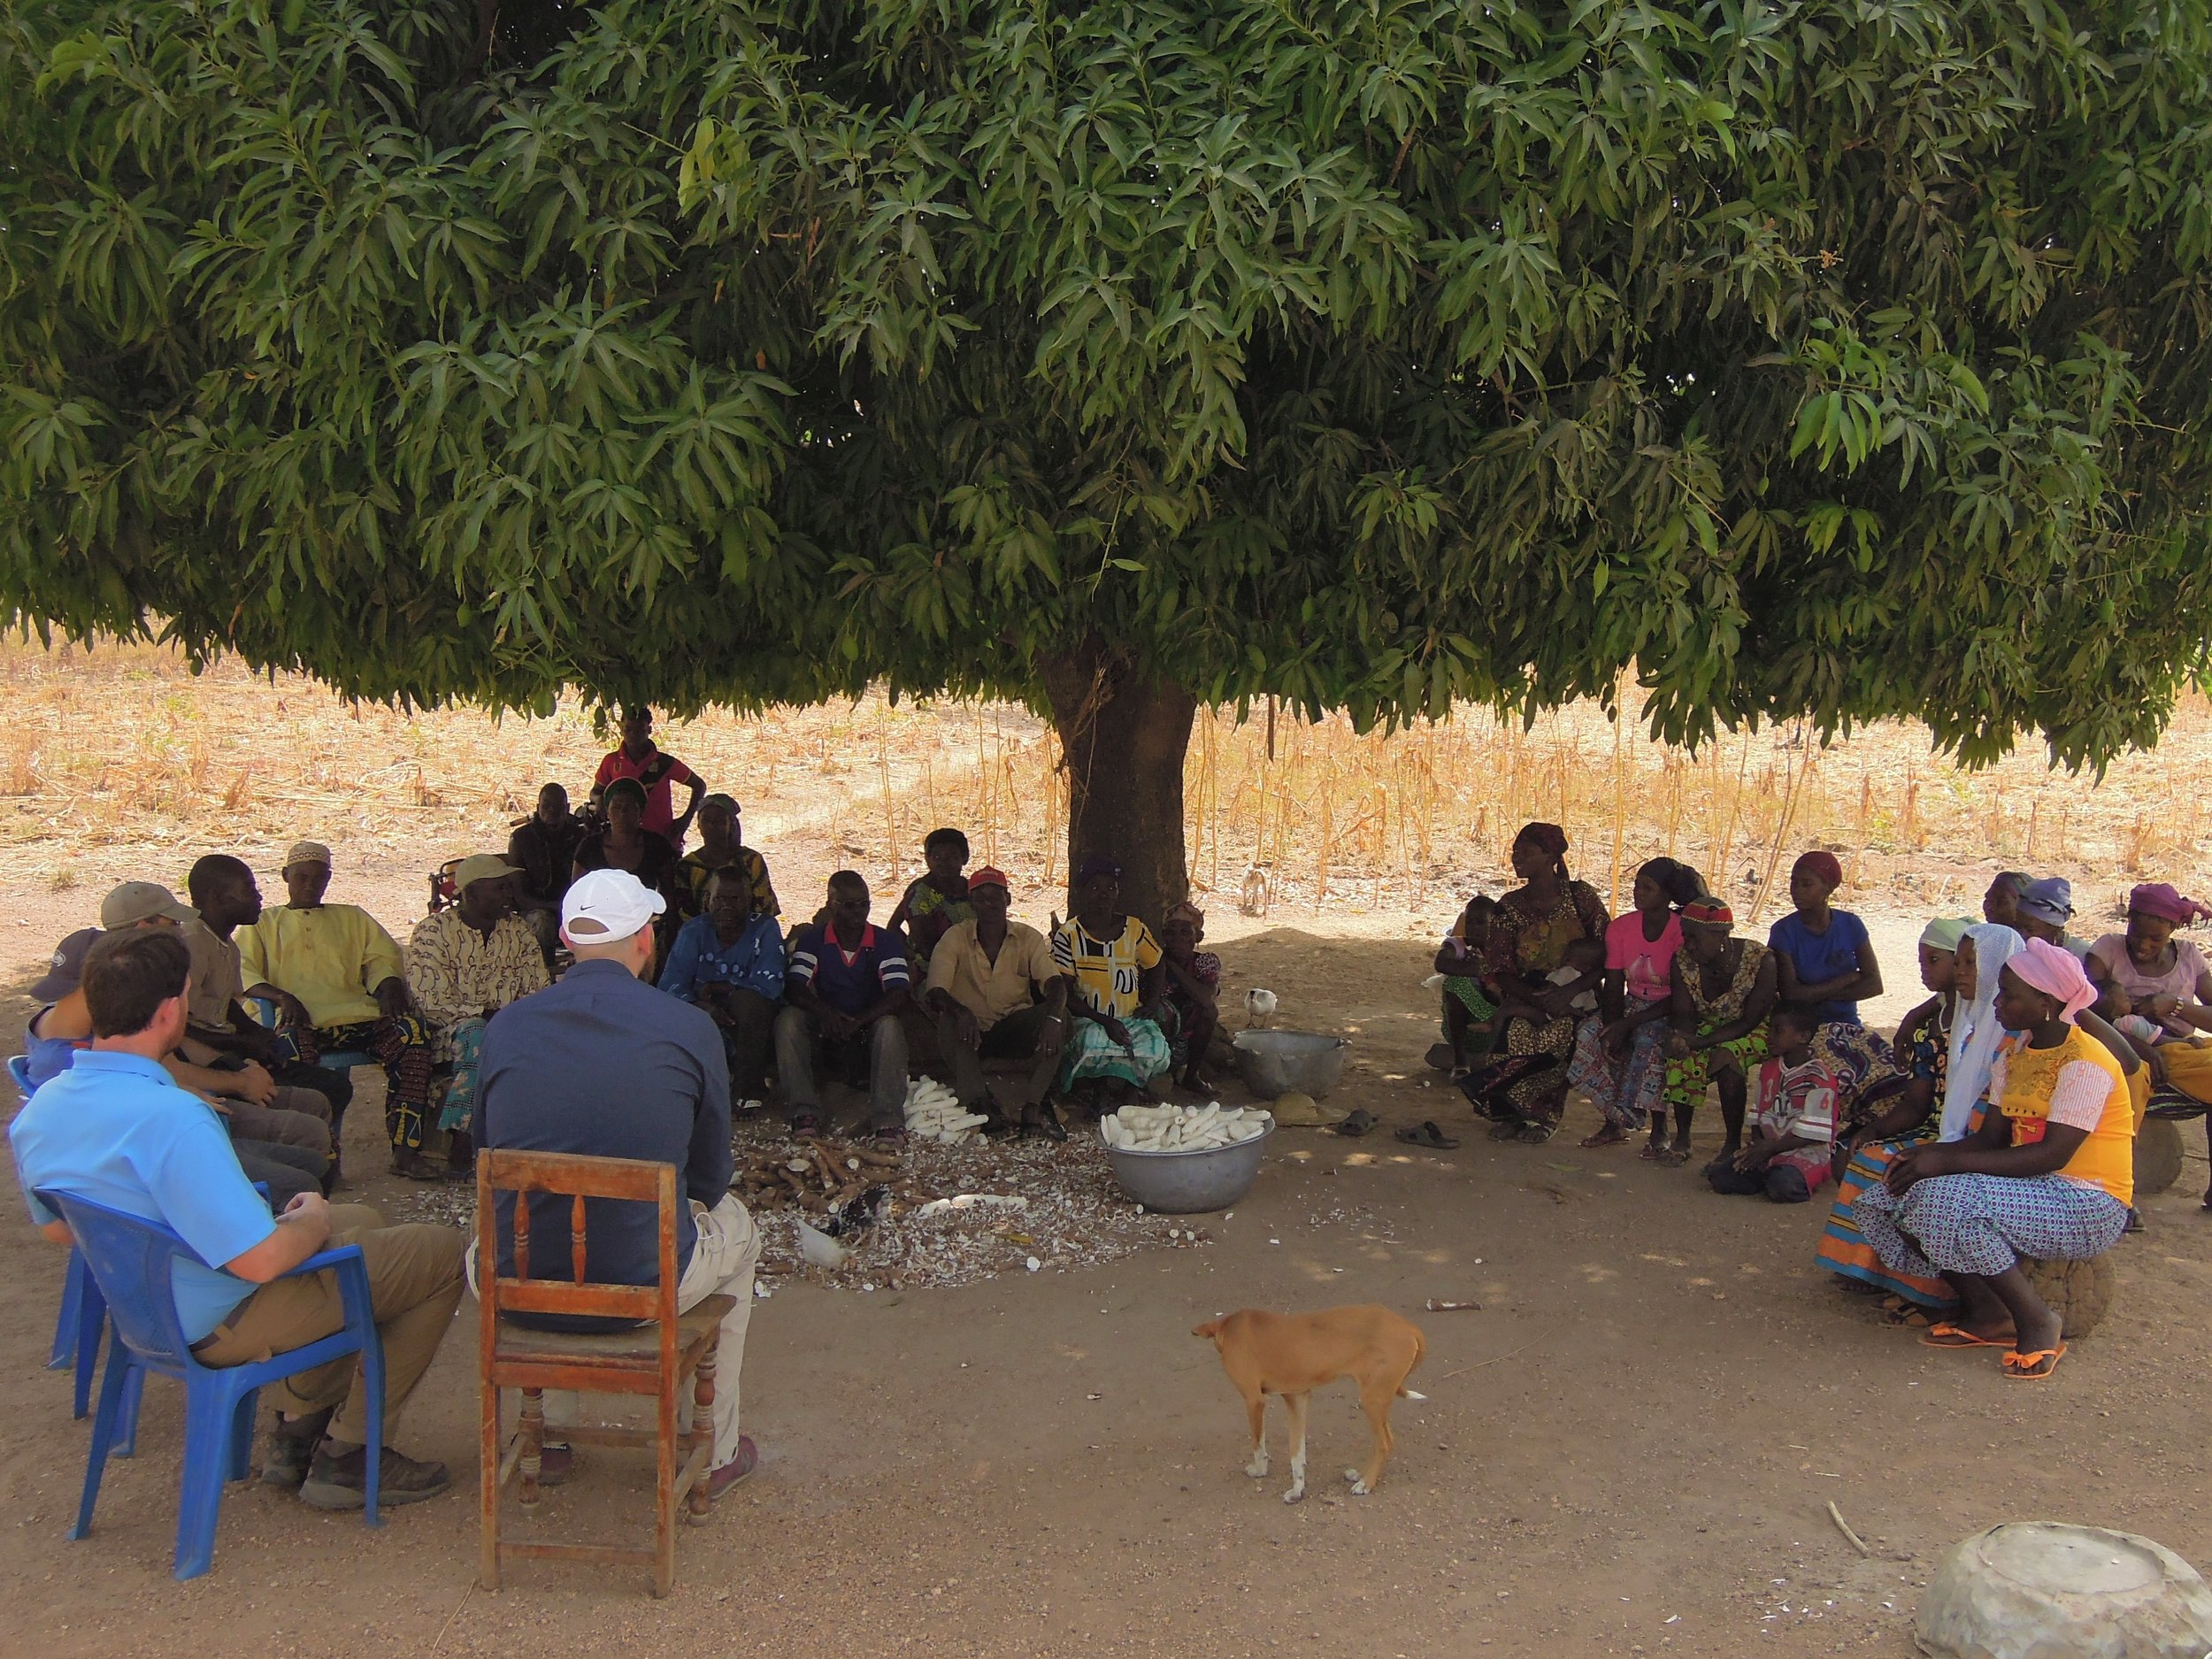 Meeting with Palabre 1 village in Togo to discuss their new well. Such meetings in hot locales often take place under the shade of large trees.